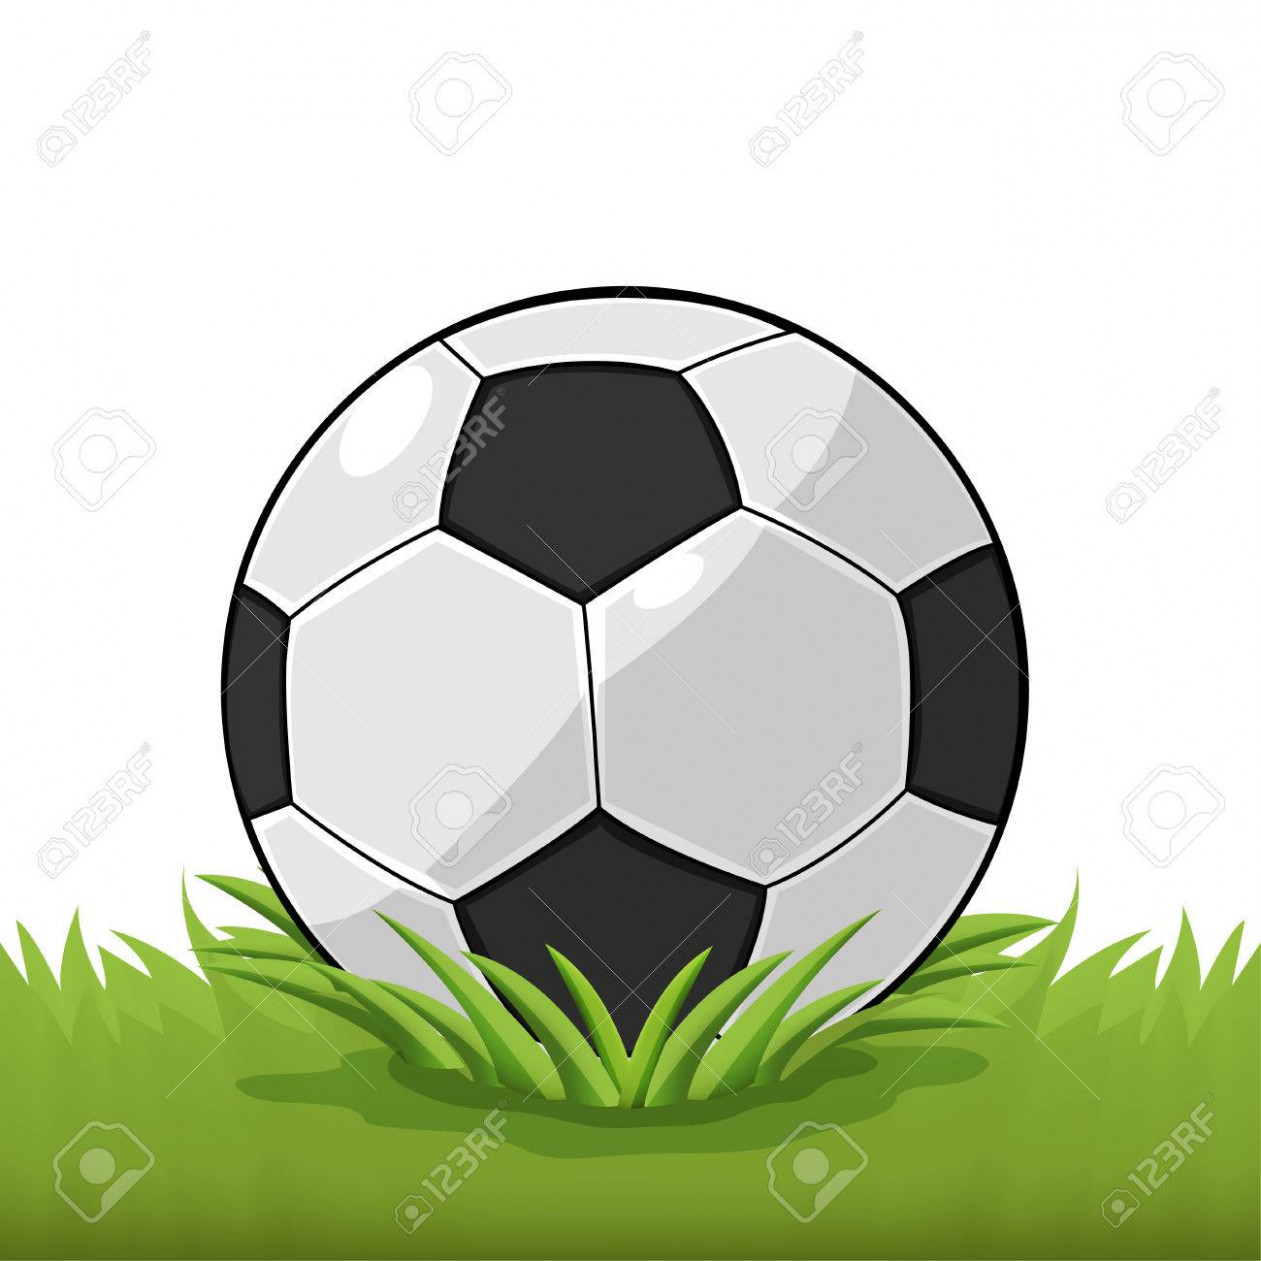 Soccer Ball Field Grass Cartoon Vector.